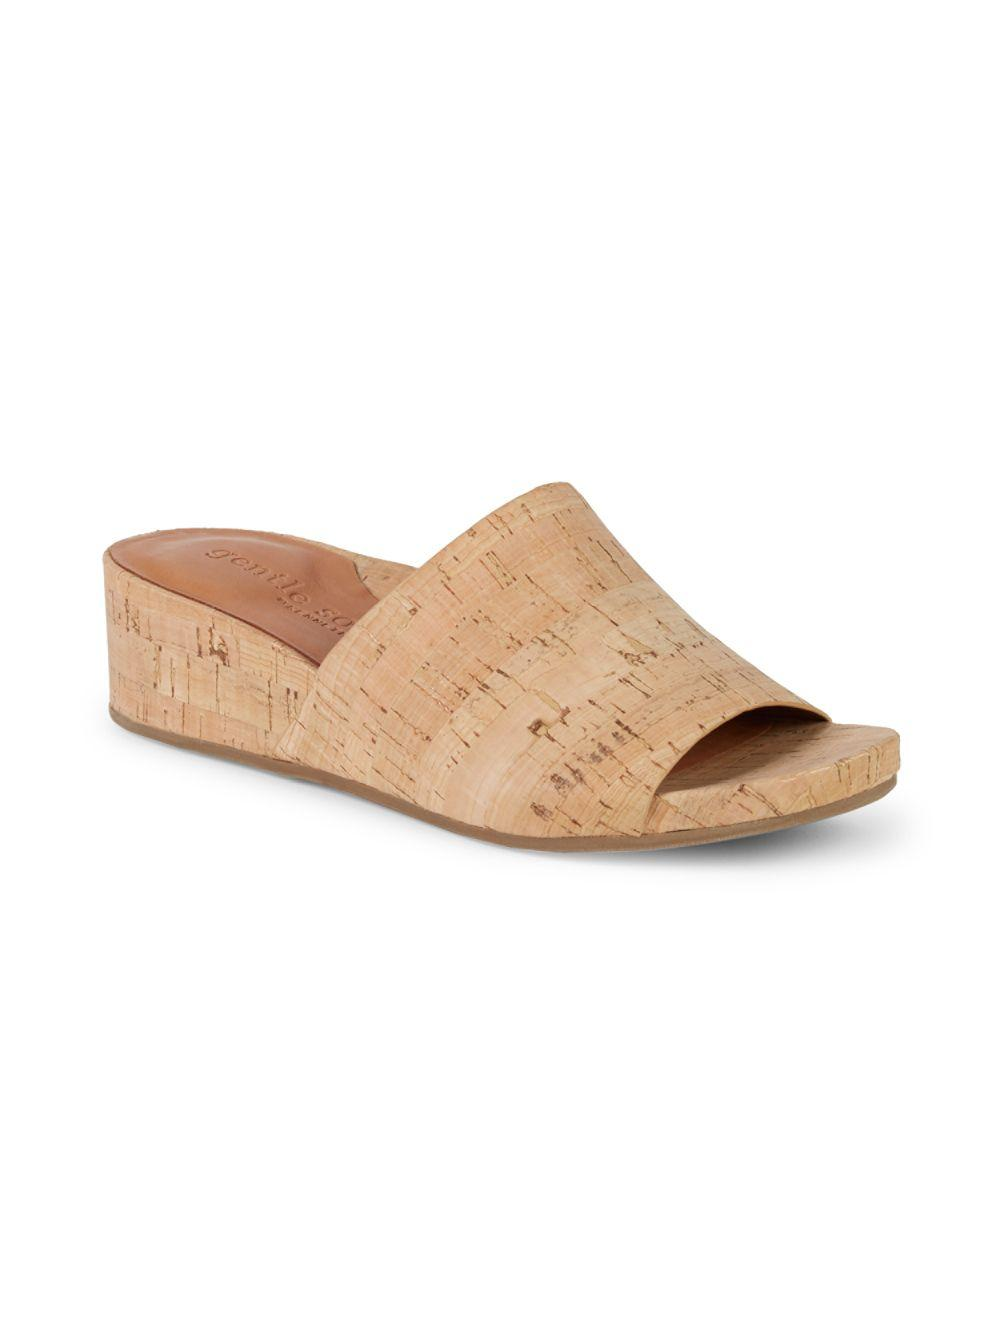 650f0217f17 Lyst - Gentle Souls Classic Wedge Sandals in Natural - Save 48%